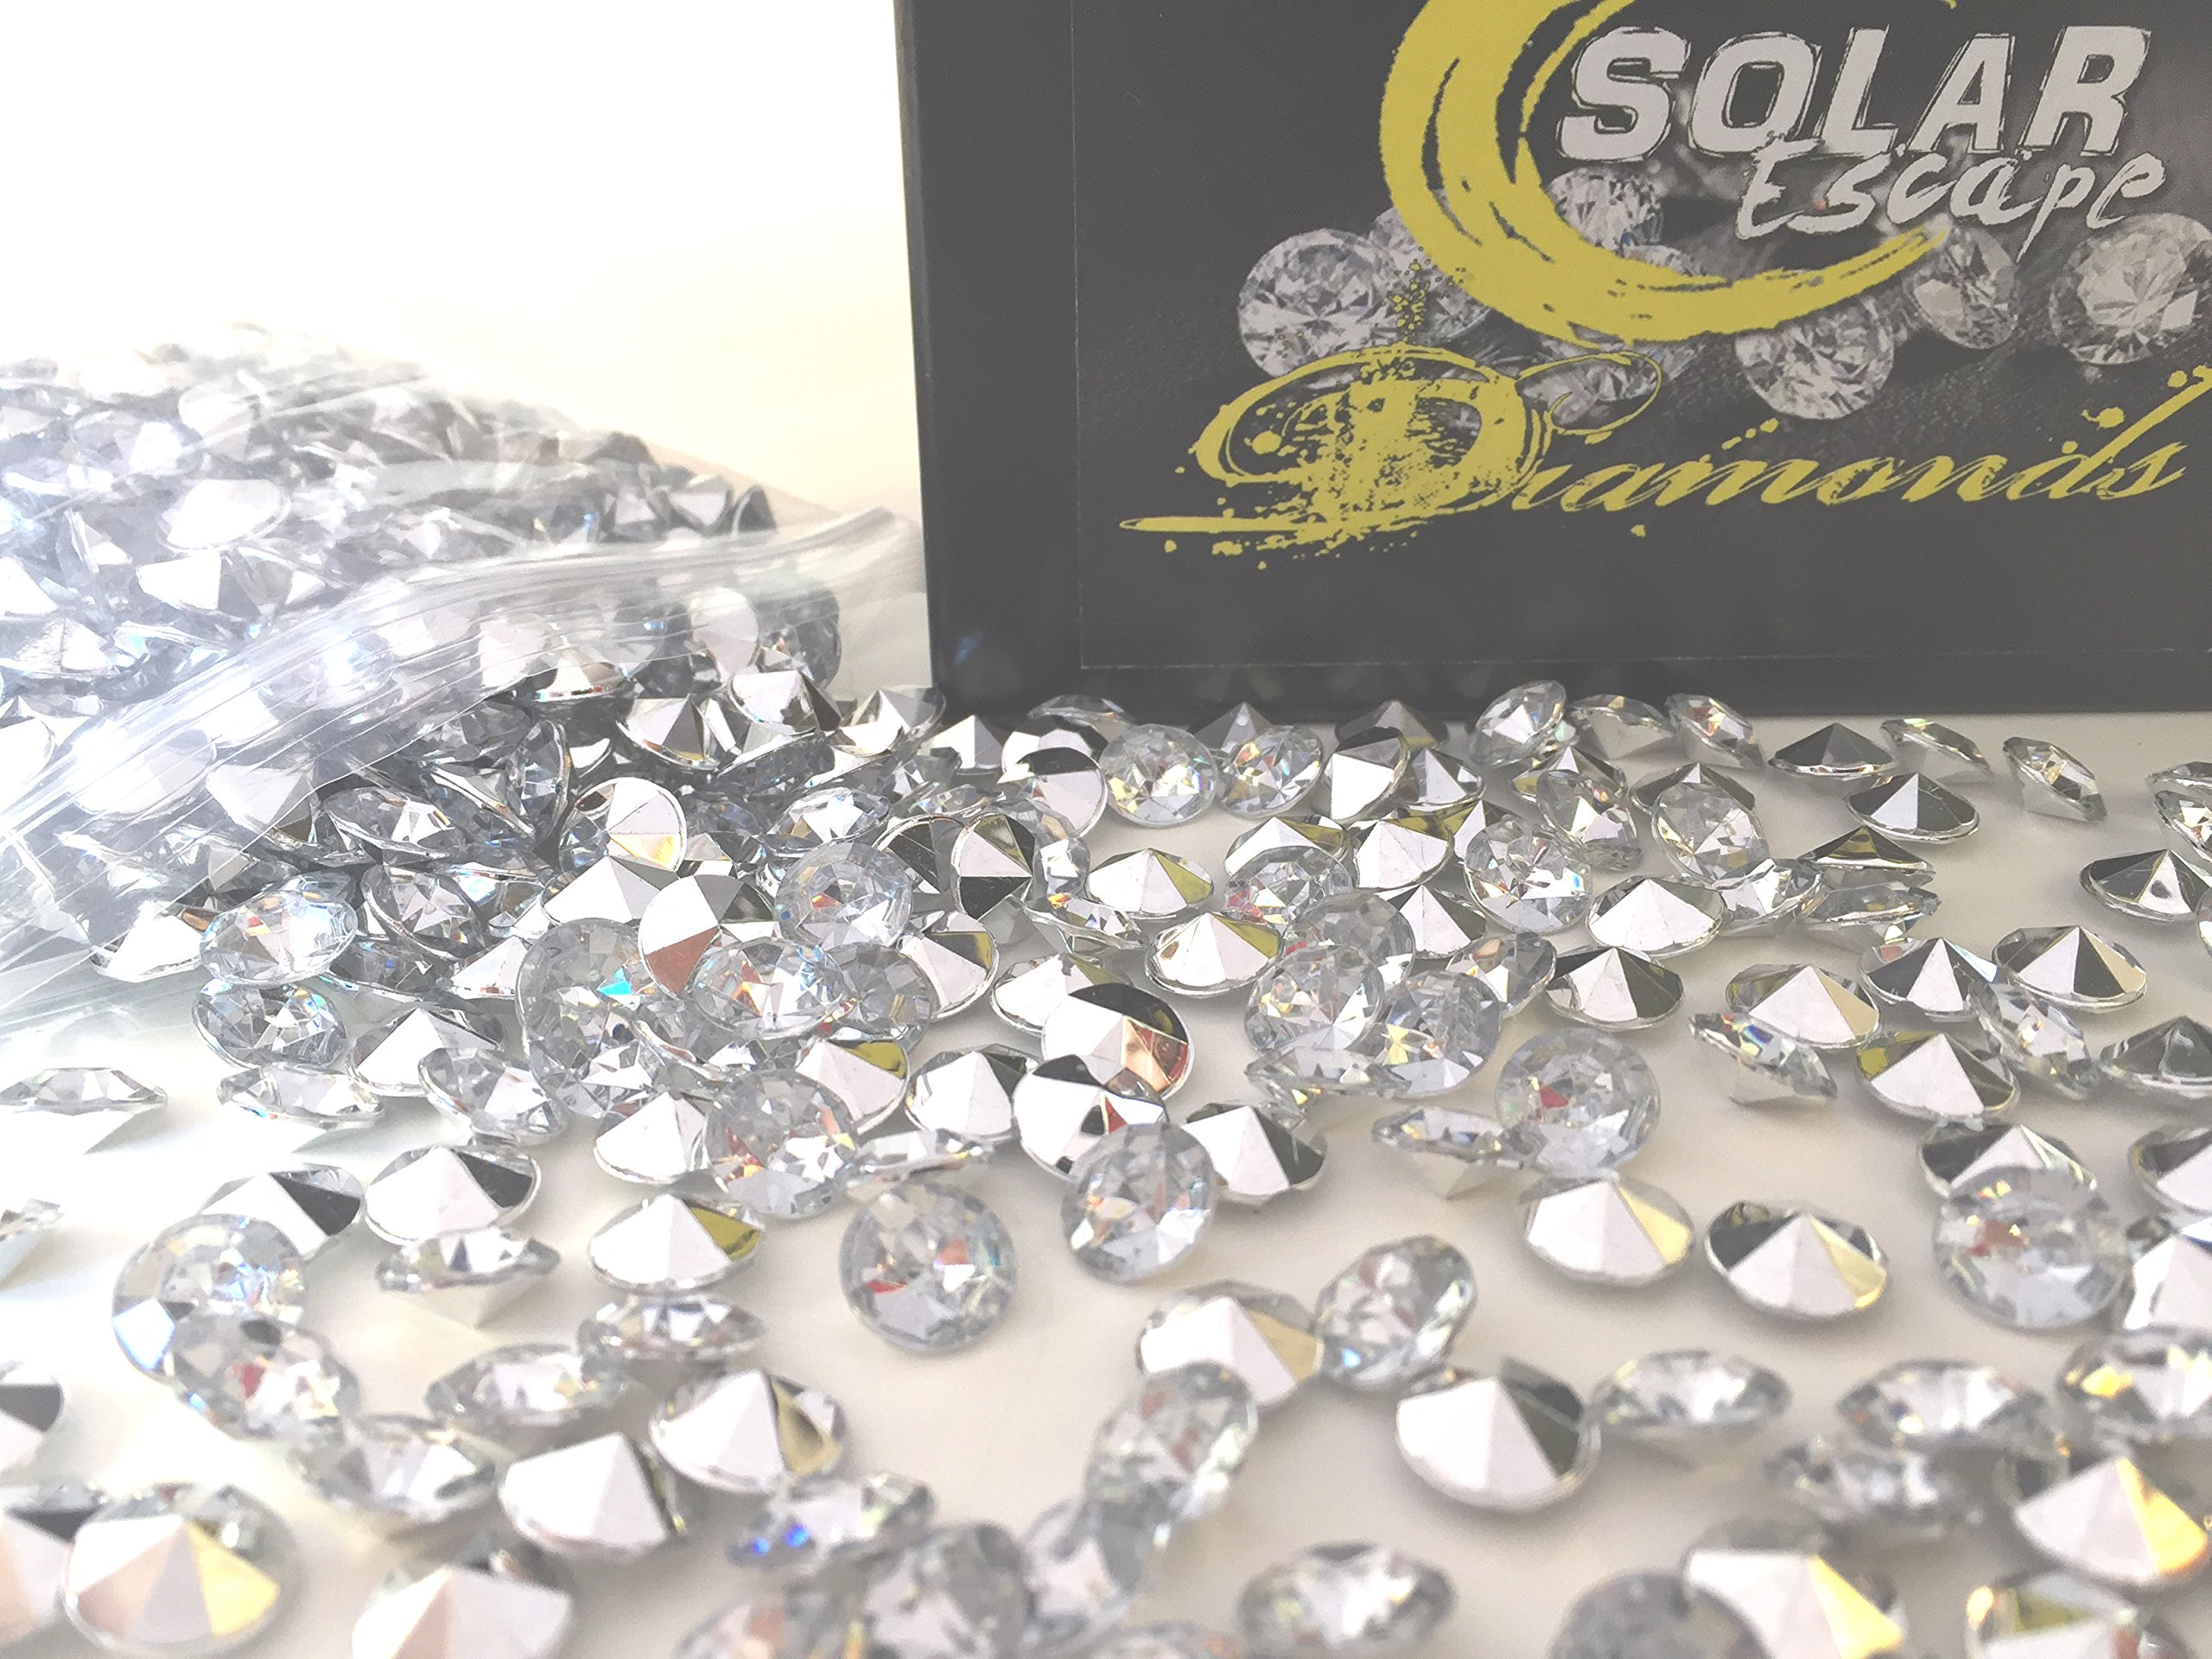 800 Diamond Table Scatter Confetti 4 Carat/ 10mm Clear / Silver - Diamond Theme Party Supplies - Wedding Bridal Shower Party Decorations by SolarEscape by Solar Escape